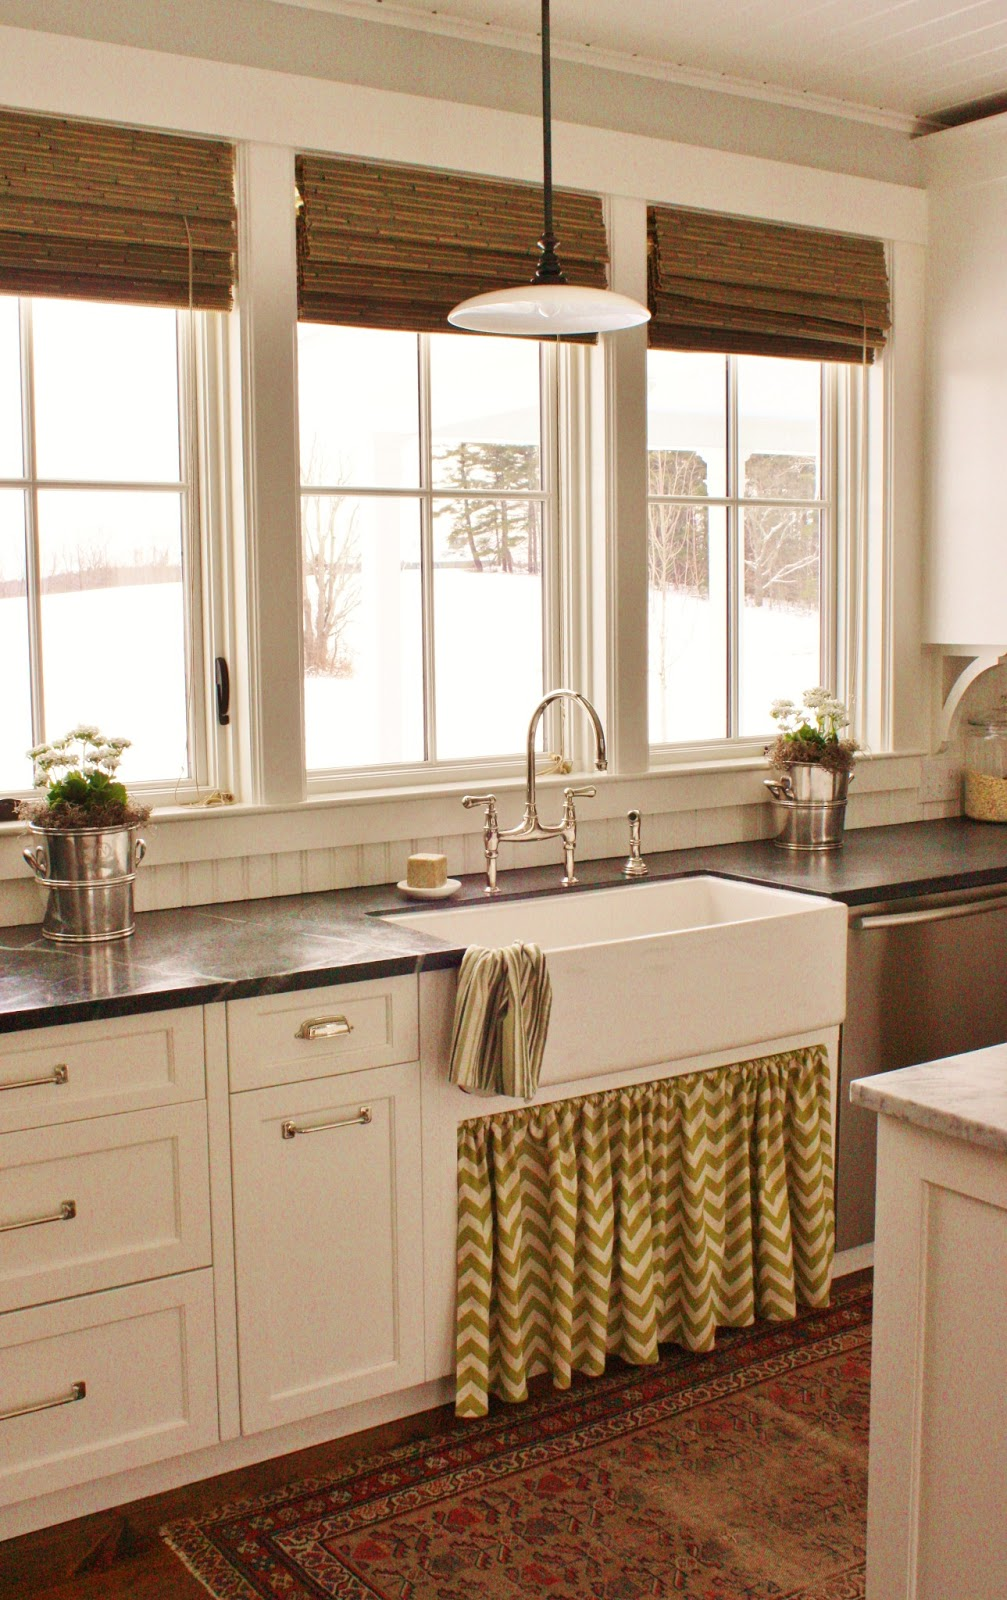 Skirted Sink Kitchen : for the love of a house: a new kitchen skirt for spring